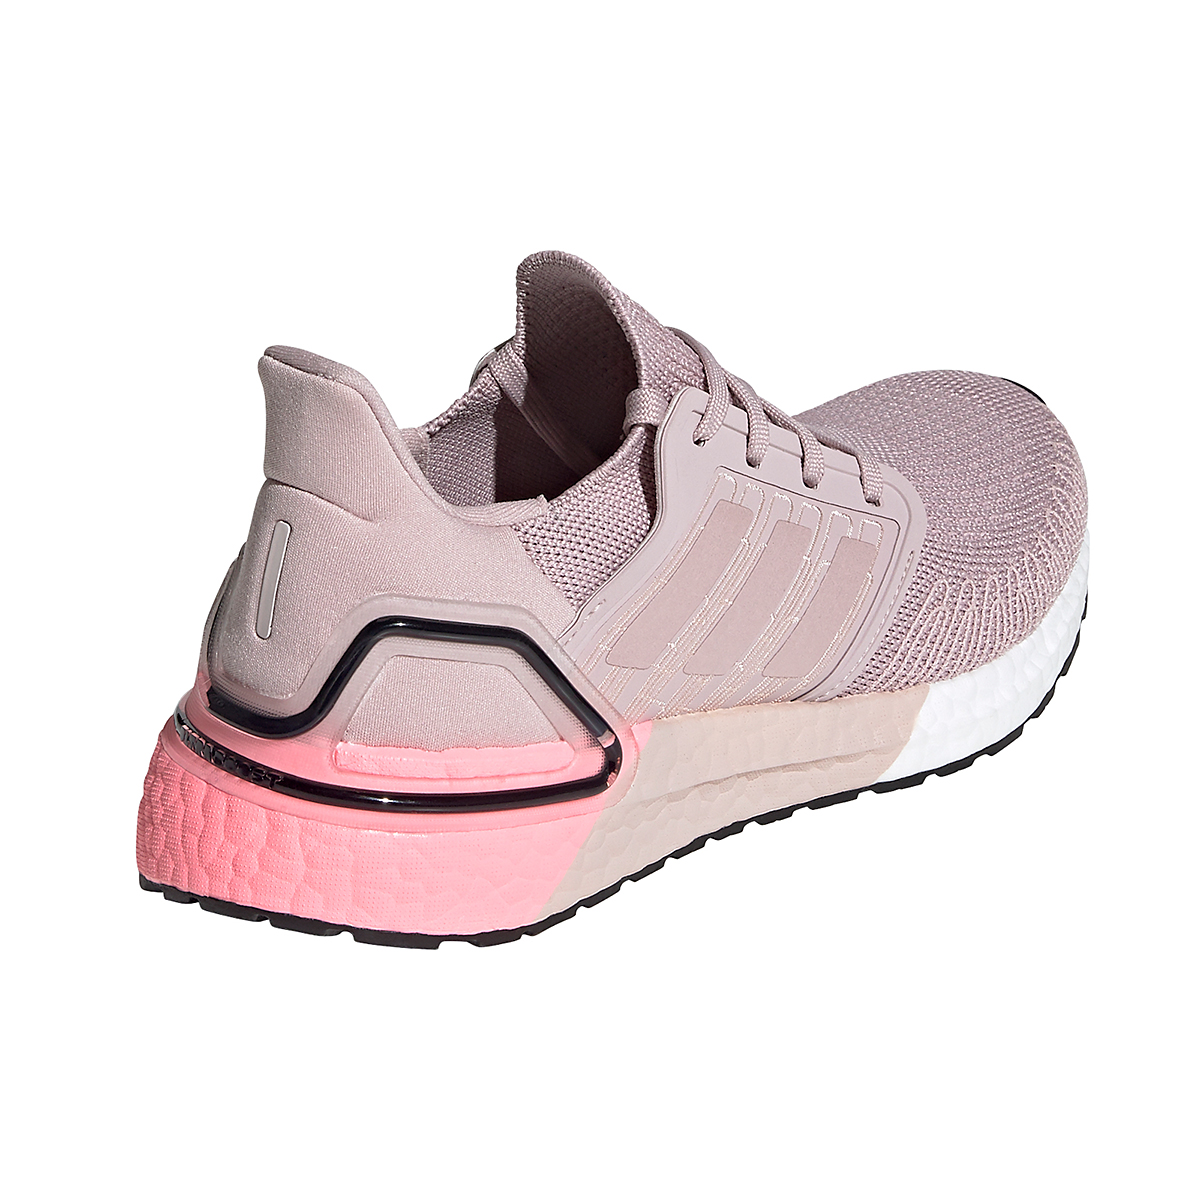 Women's Adidas Ultraboost 20 Running Shoe - Color: New Rose - Size: 5 - Width: Regular, New Rose, large, image 2